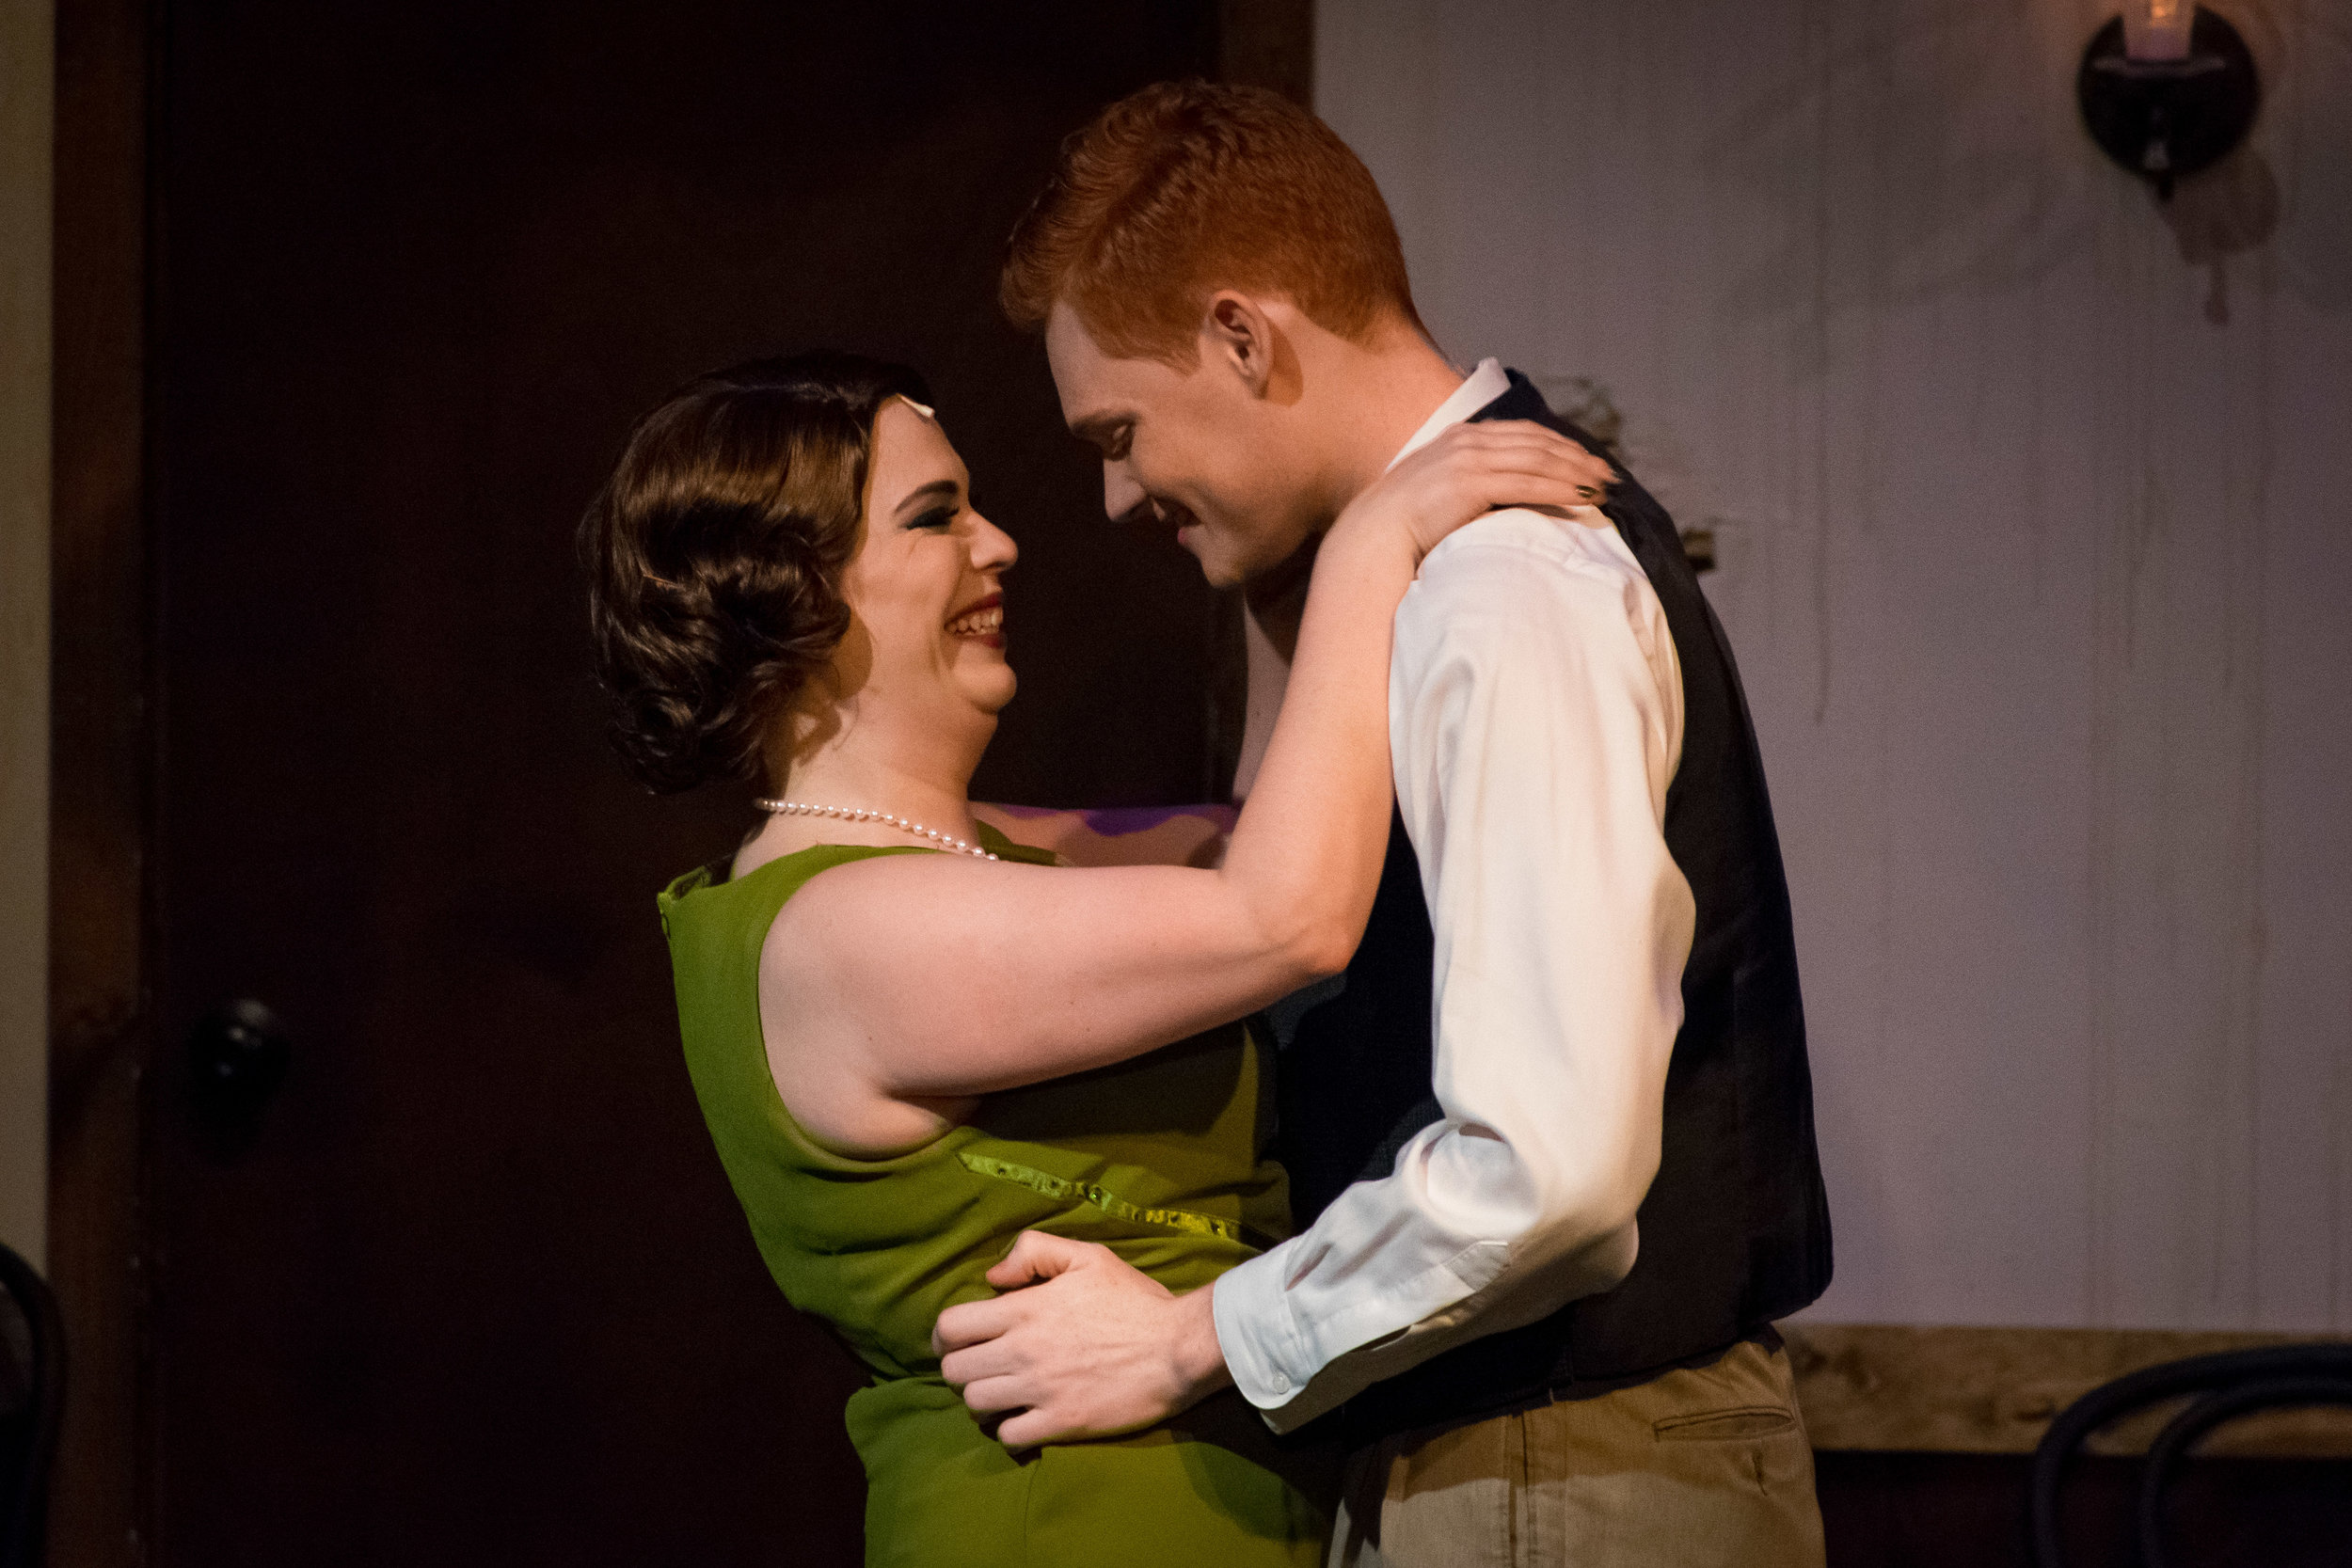 Megan Mostow and Seth Fallon as Sally and Cliff